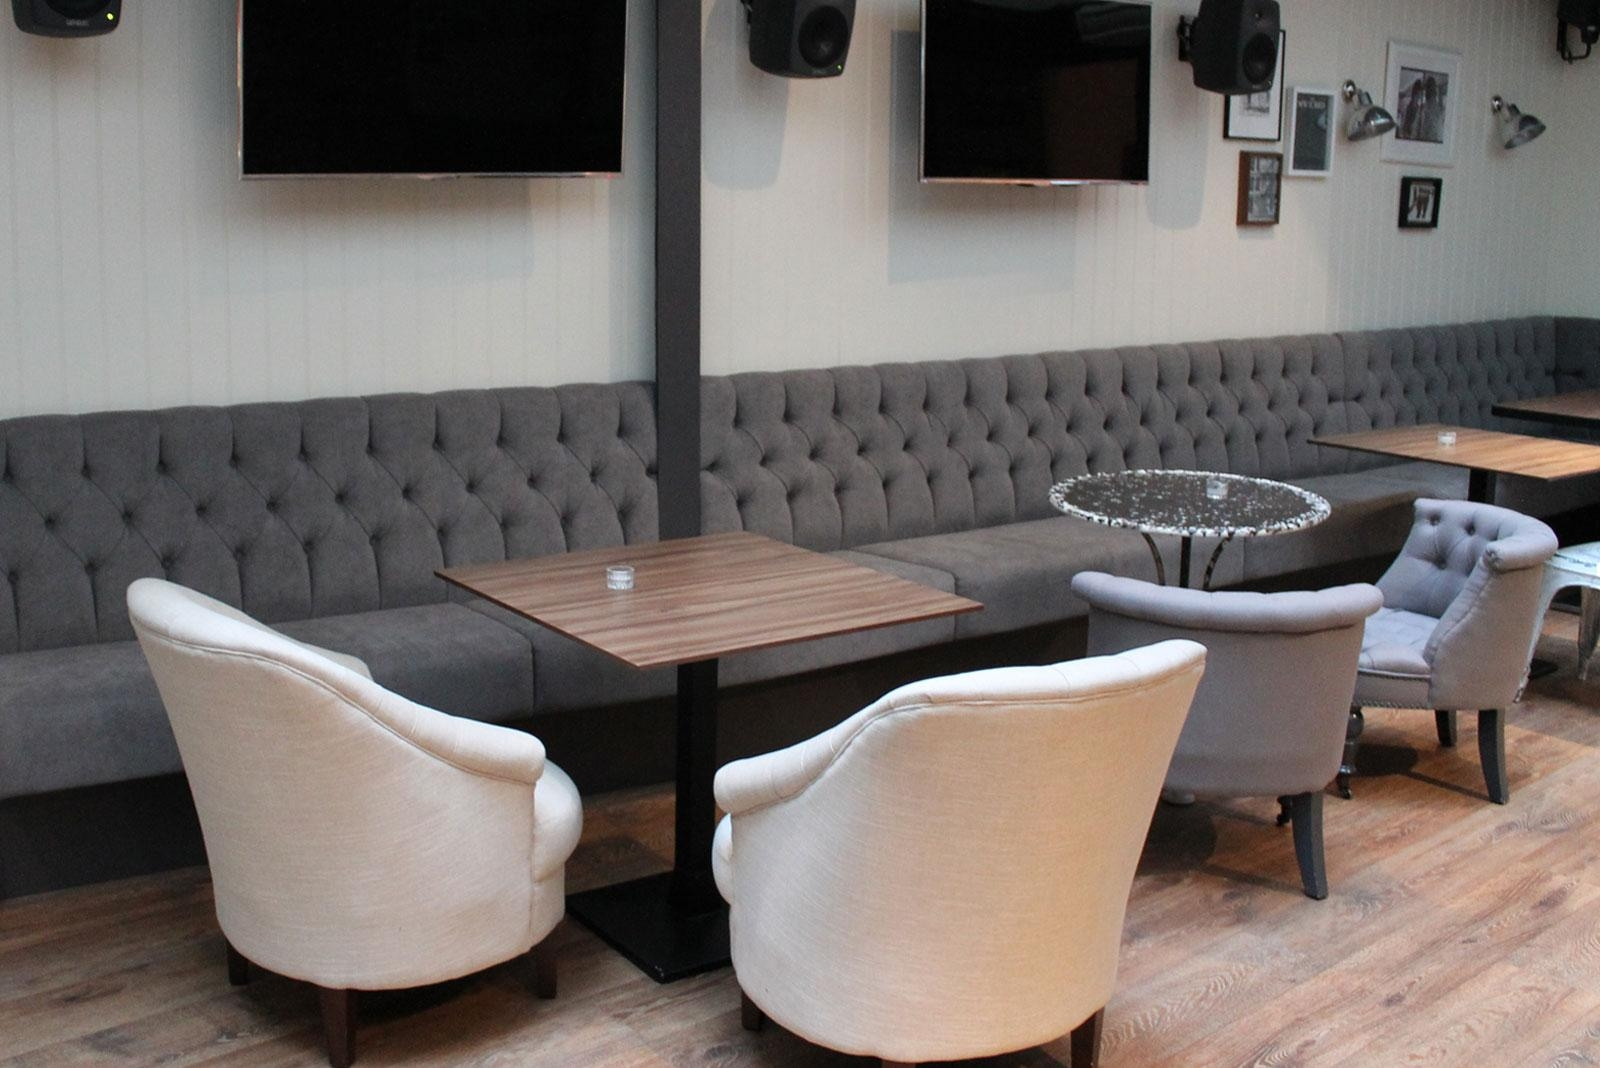 Banquette Seating Uk Ideas – Banquette Design With Regard To Banquette Sofas (Image 8 of 20)